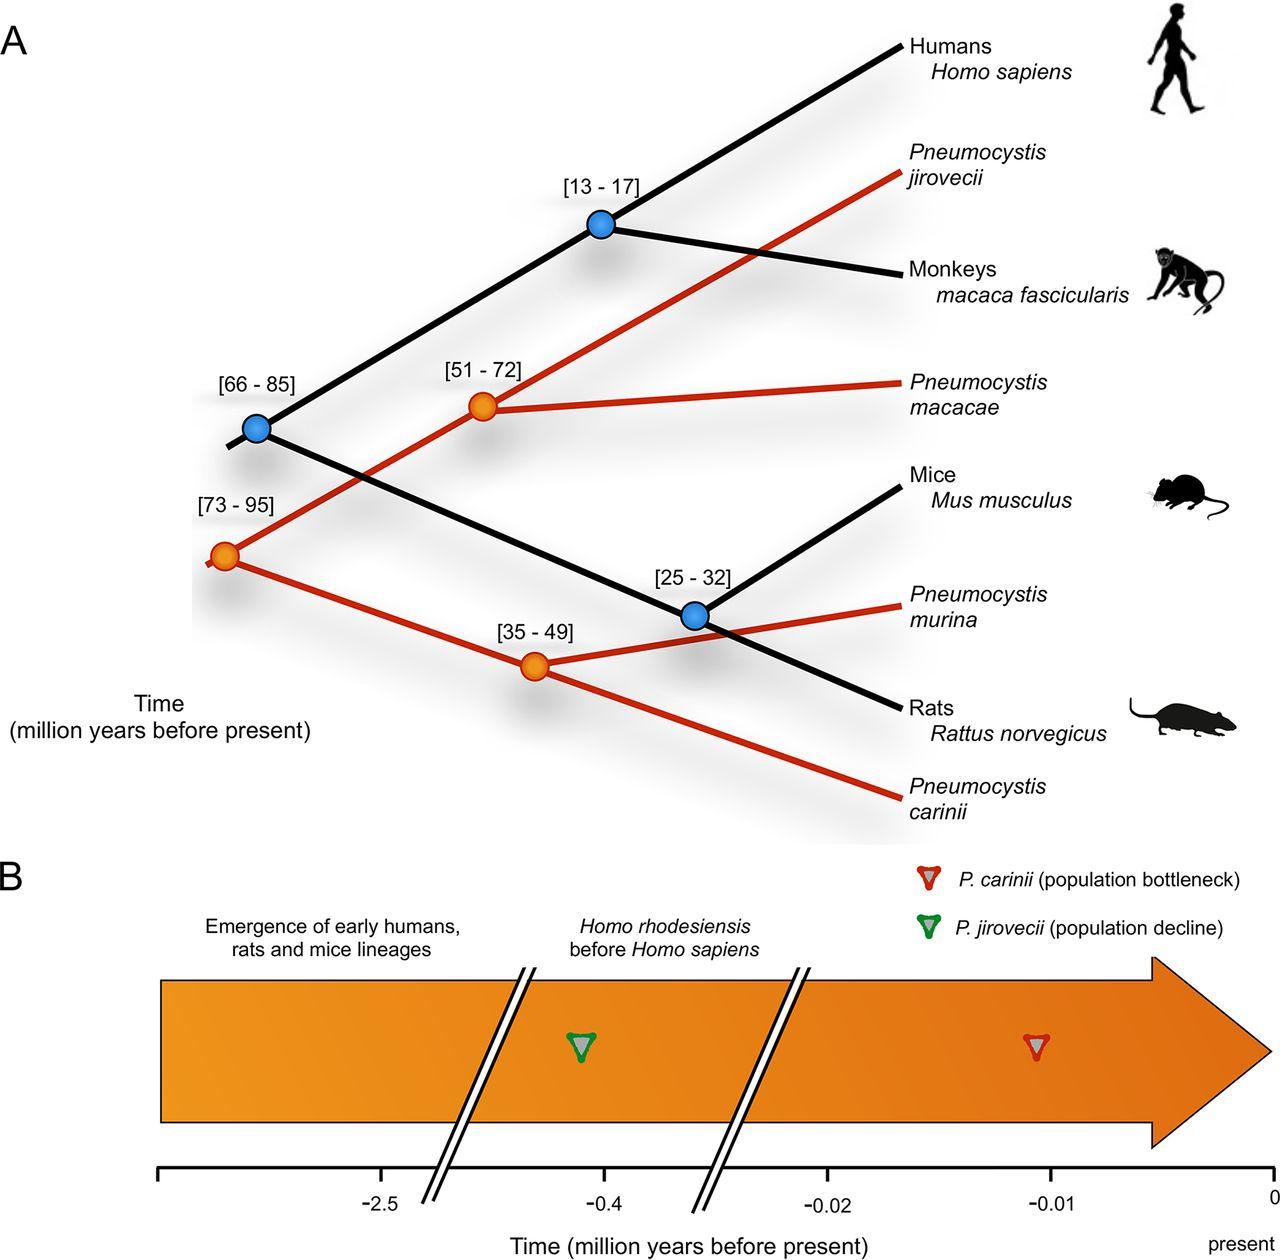 Figure 6 - Overview of the timing and evolution of Pneumocystis and their mammalian hosts